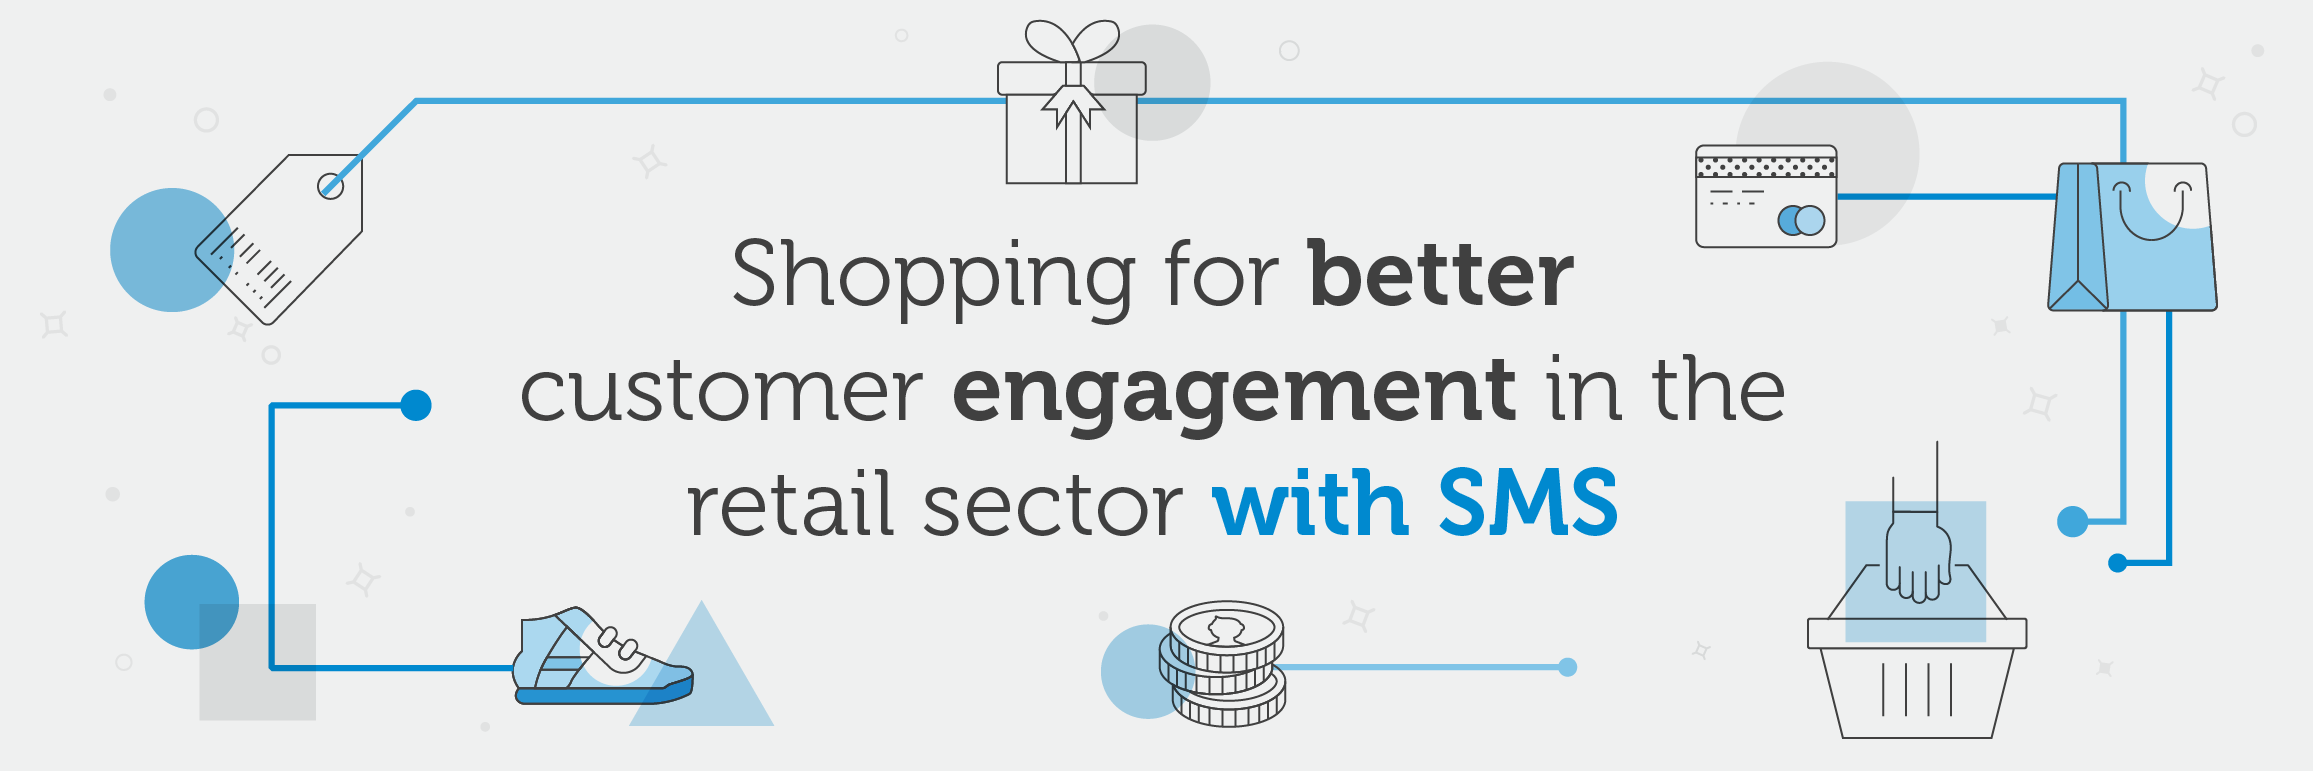 Shopping for better customer engagement in the retail sector with SMS